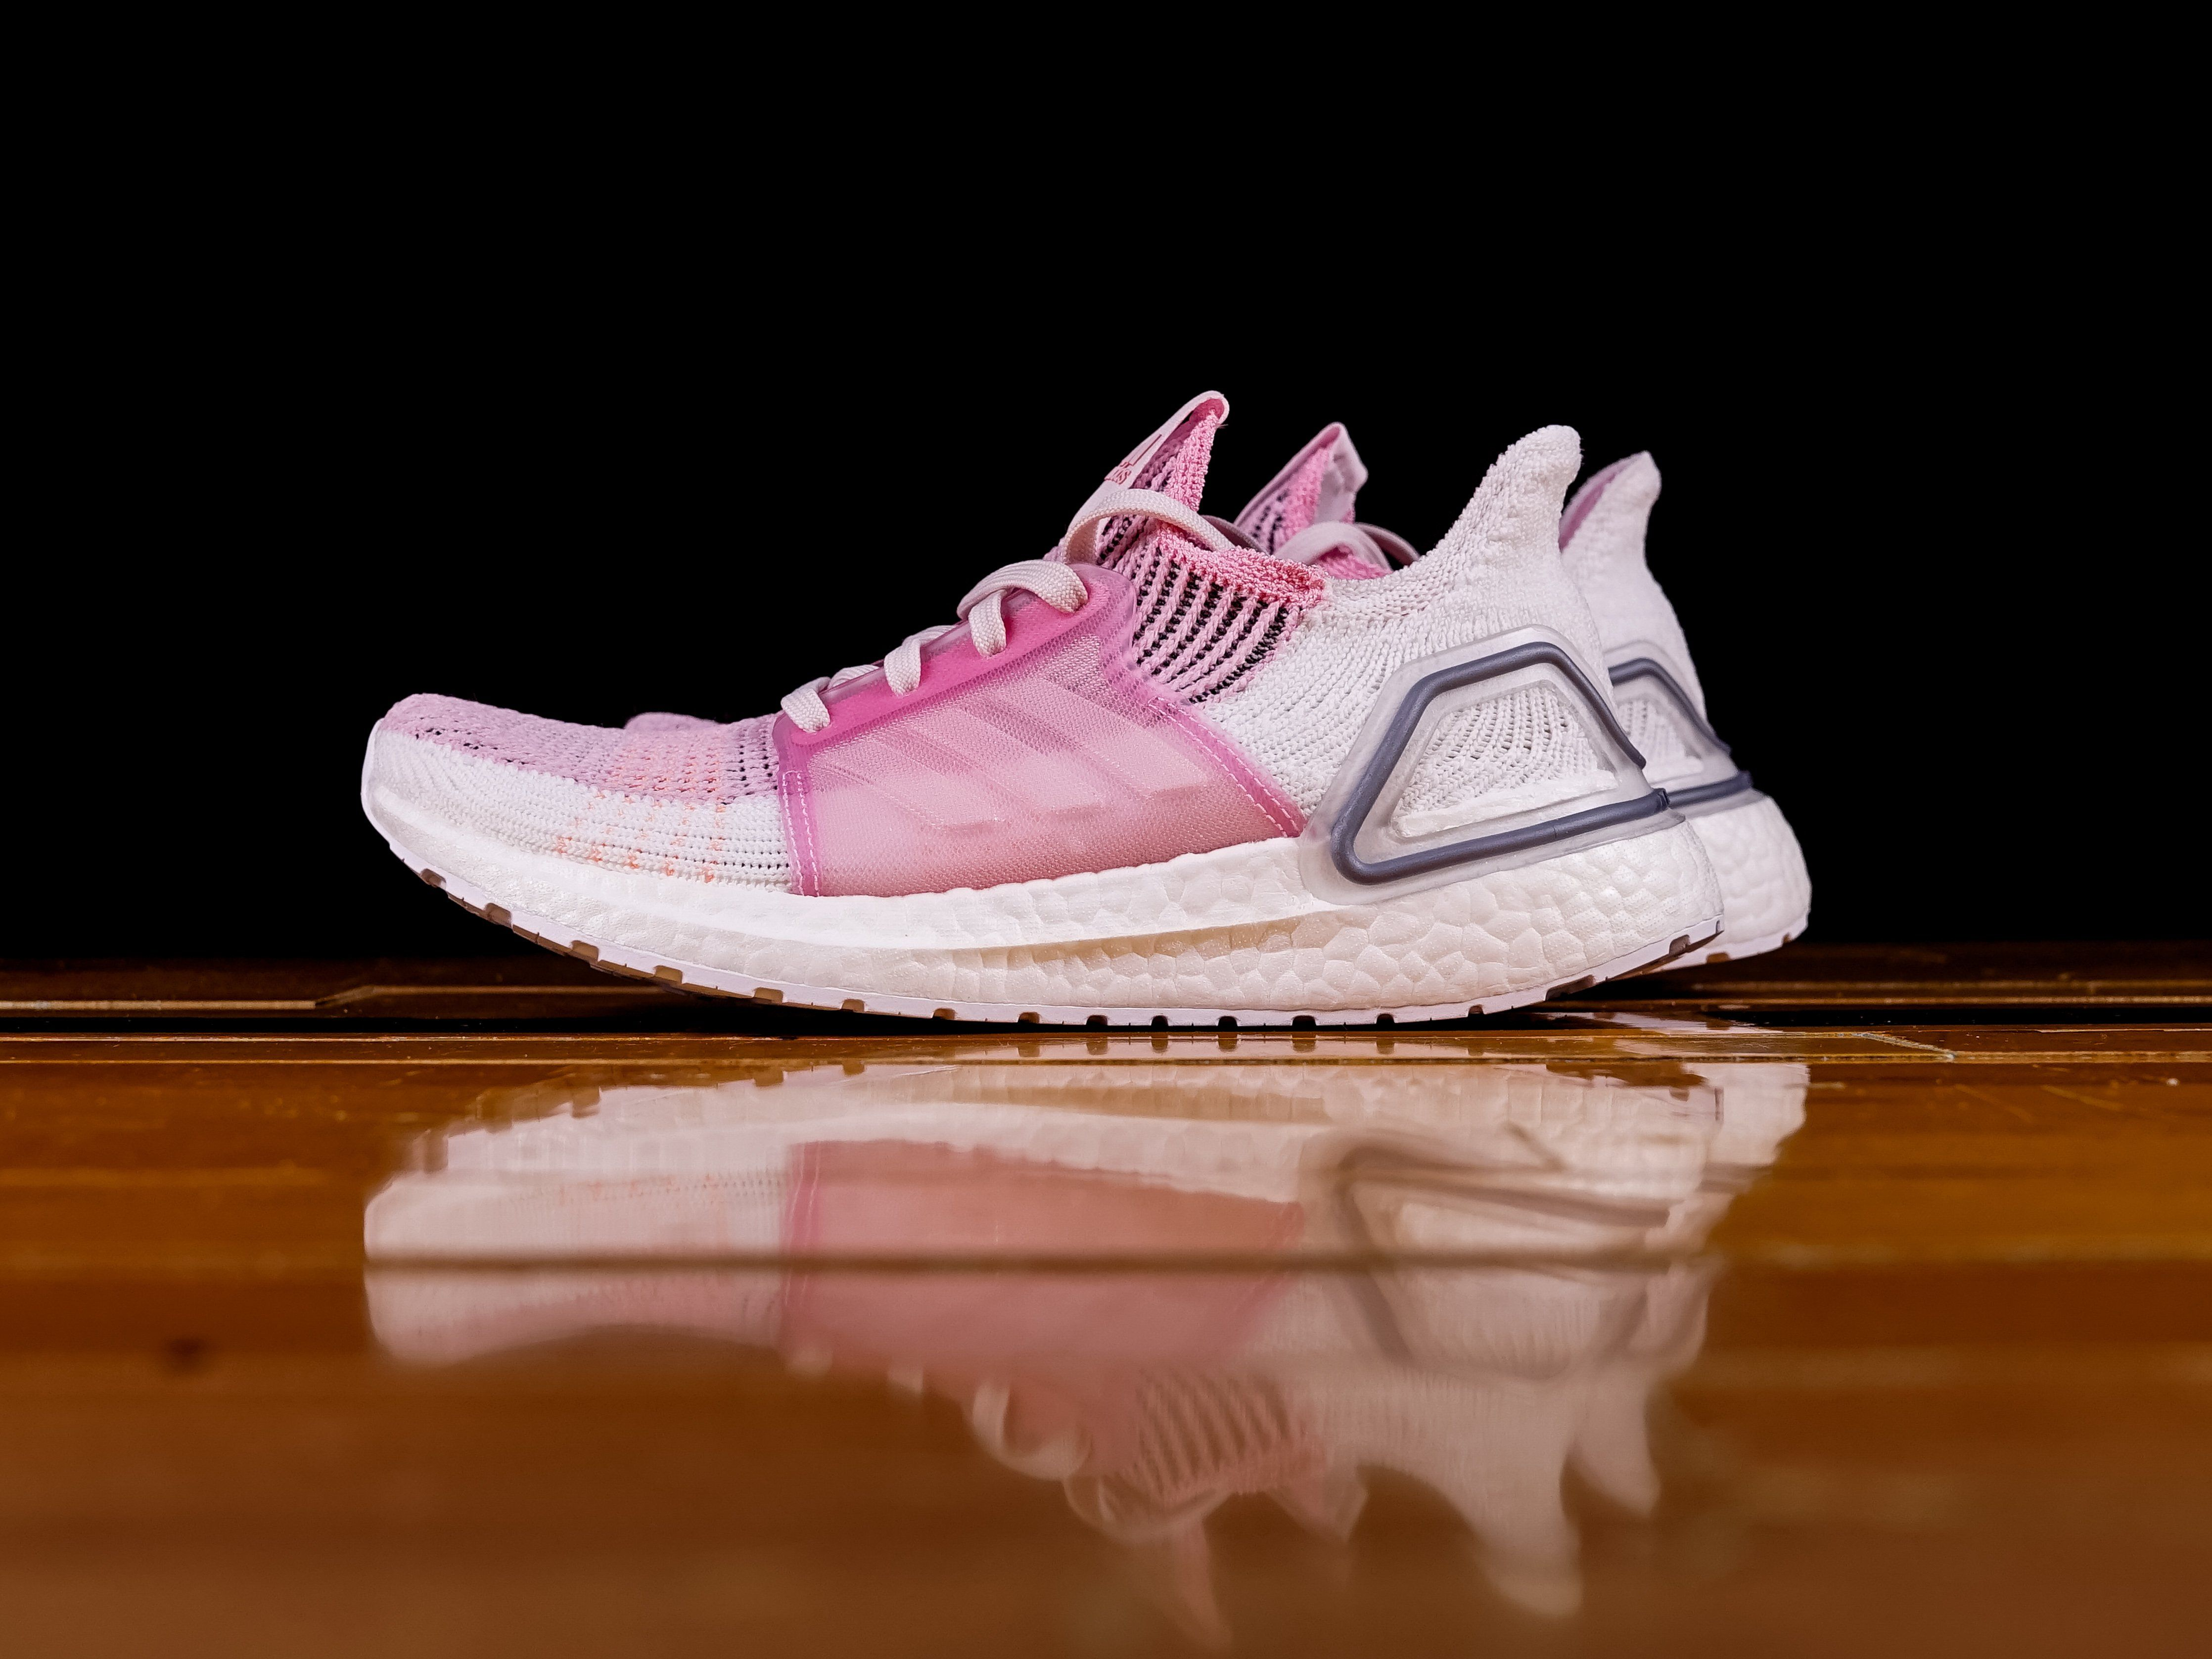 87b58d6e7 Women s Adidas UltraBoost 19  F35283  in 2019